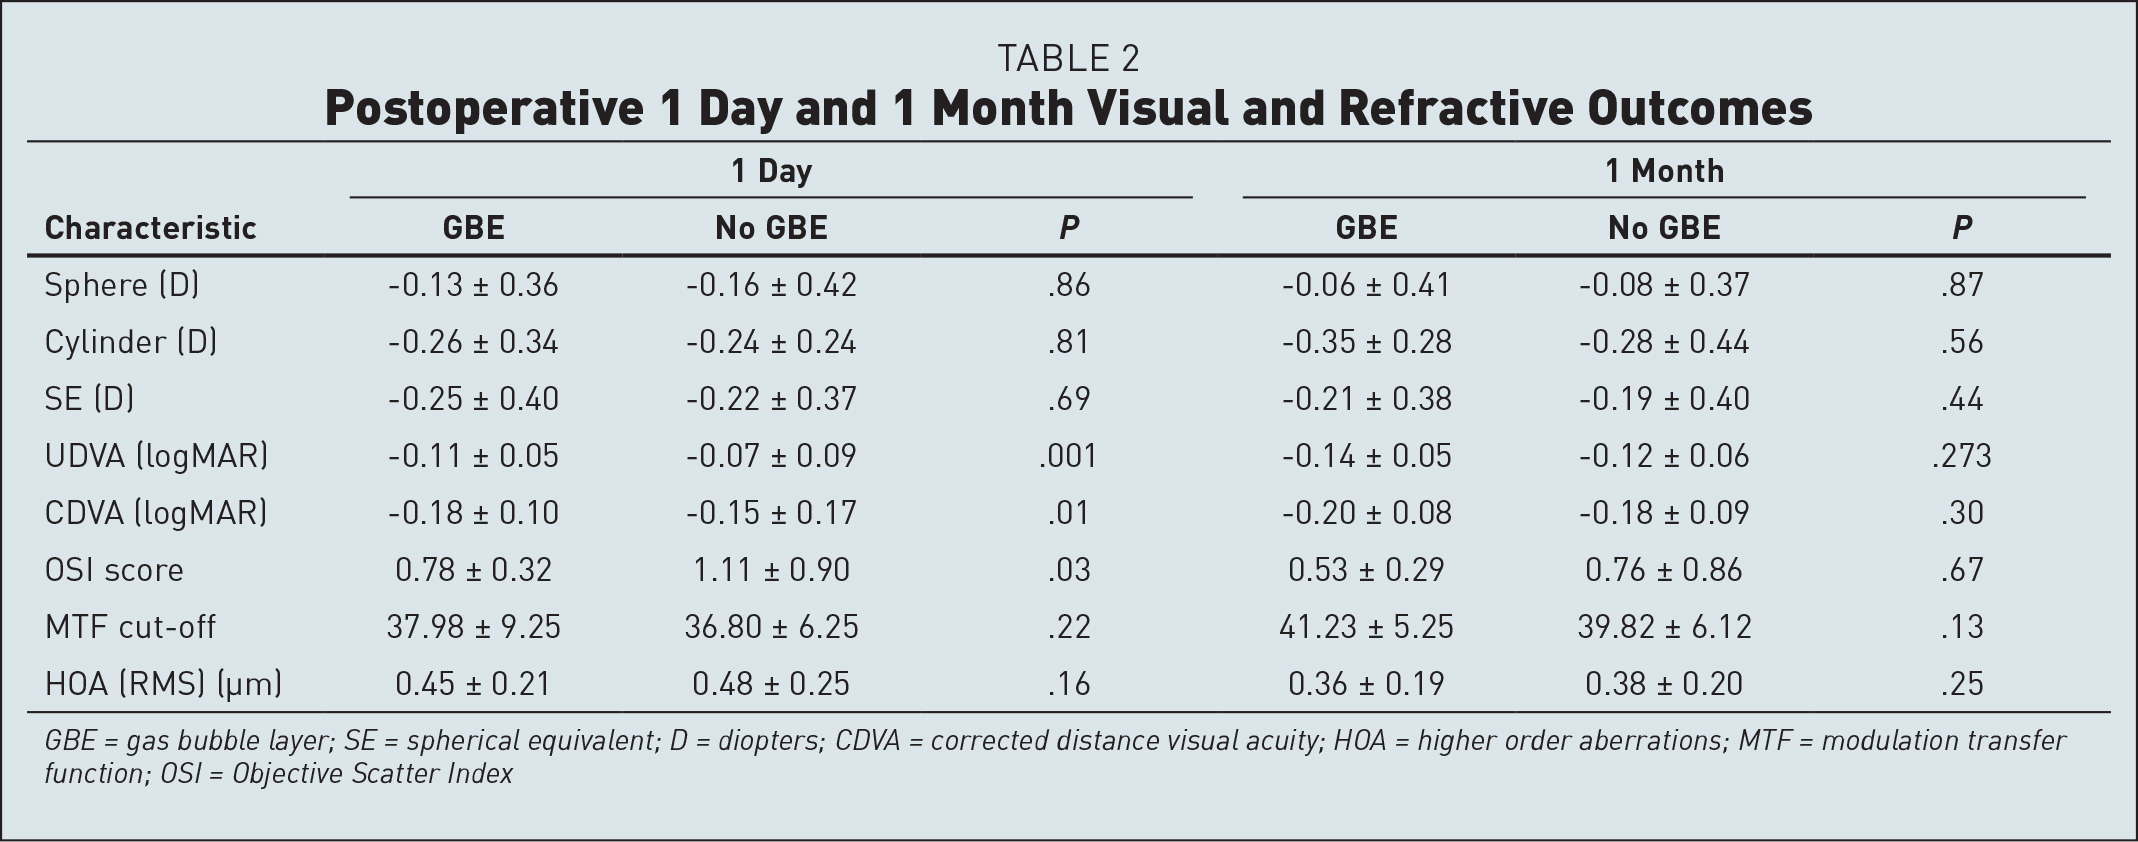 Postoperative 1 Day and 1 Month Visual and Refractive Outcomes